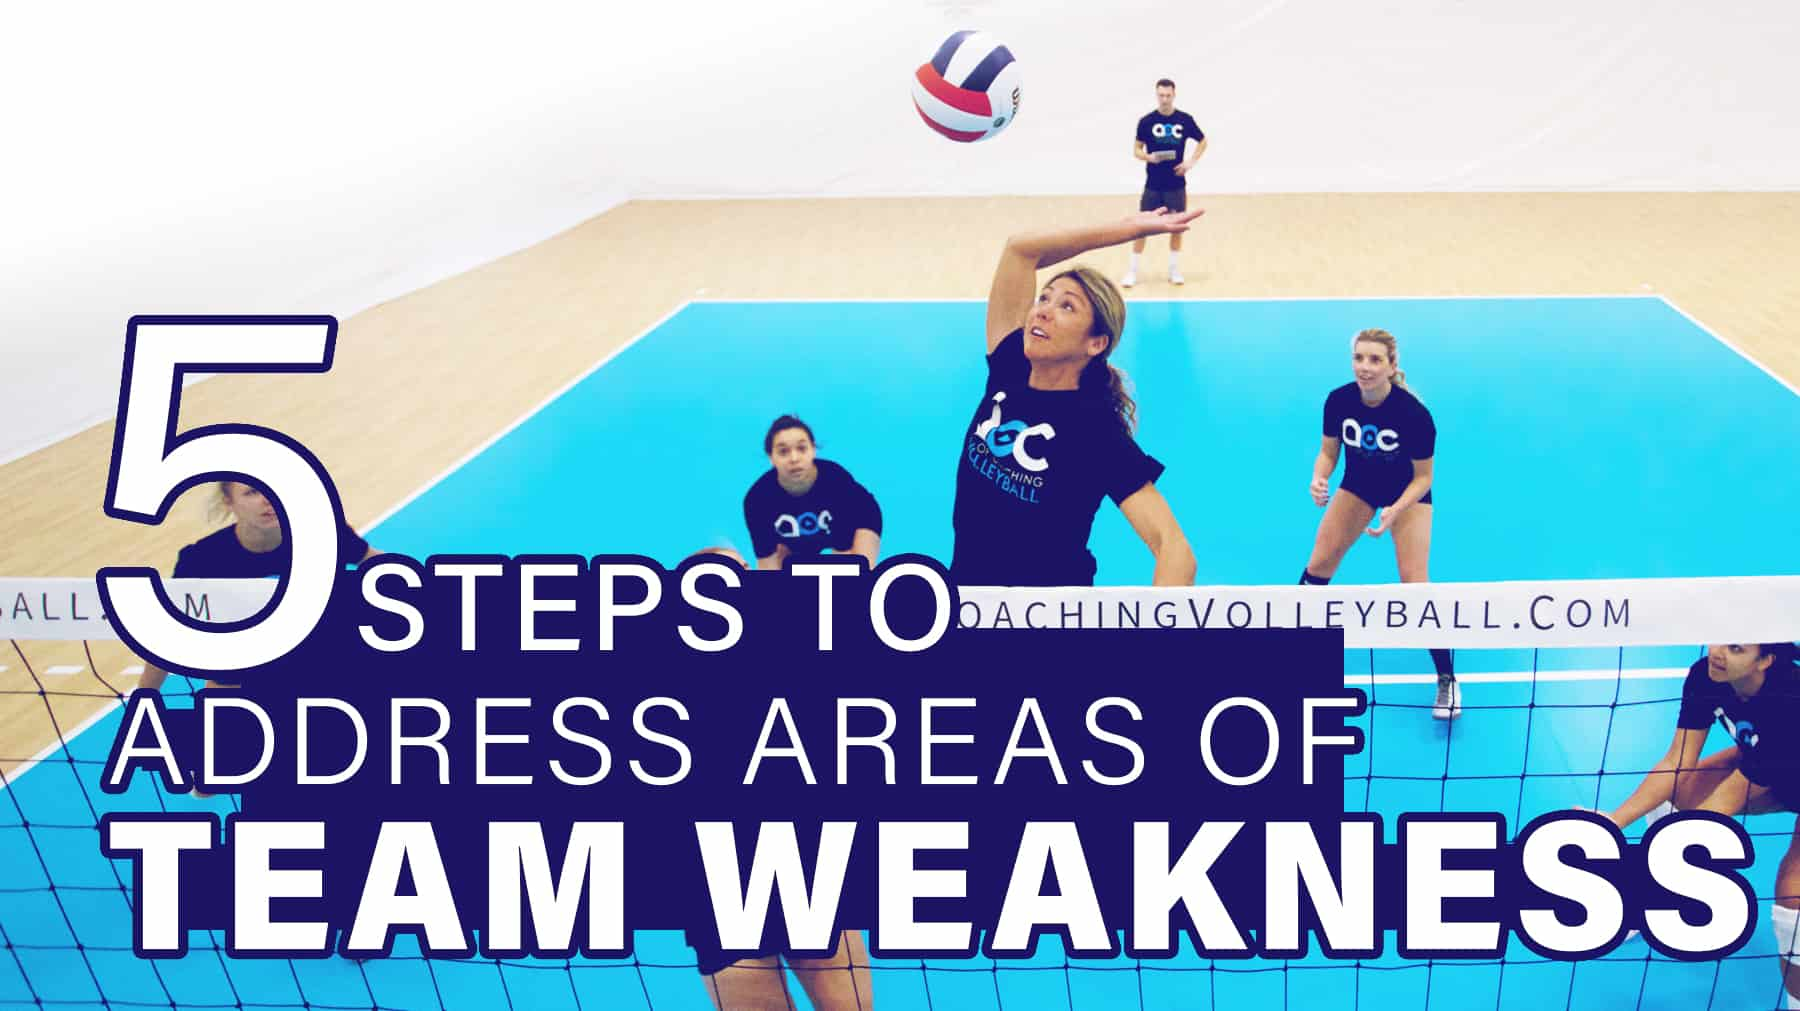 5 steps to address areas of team weakness